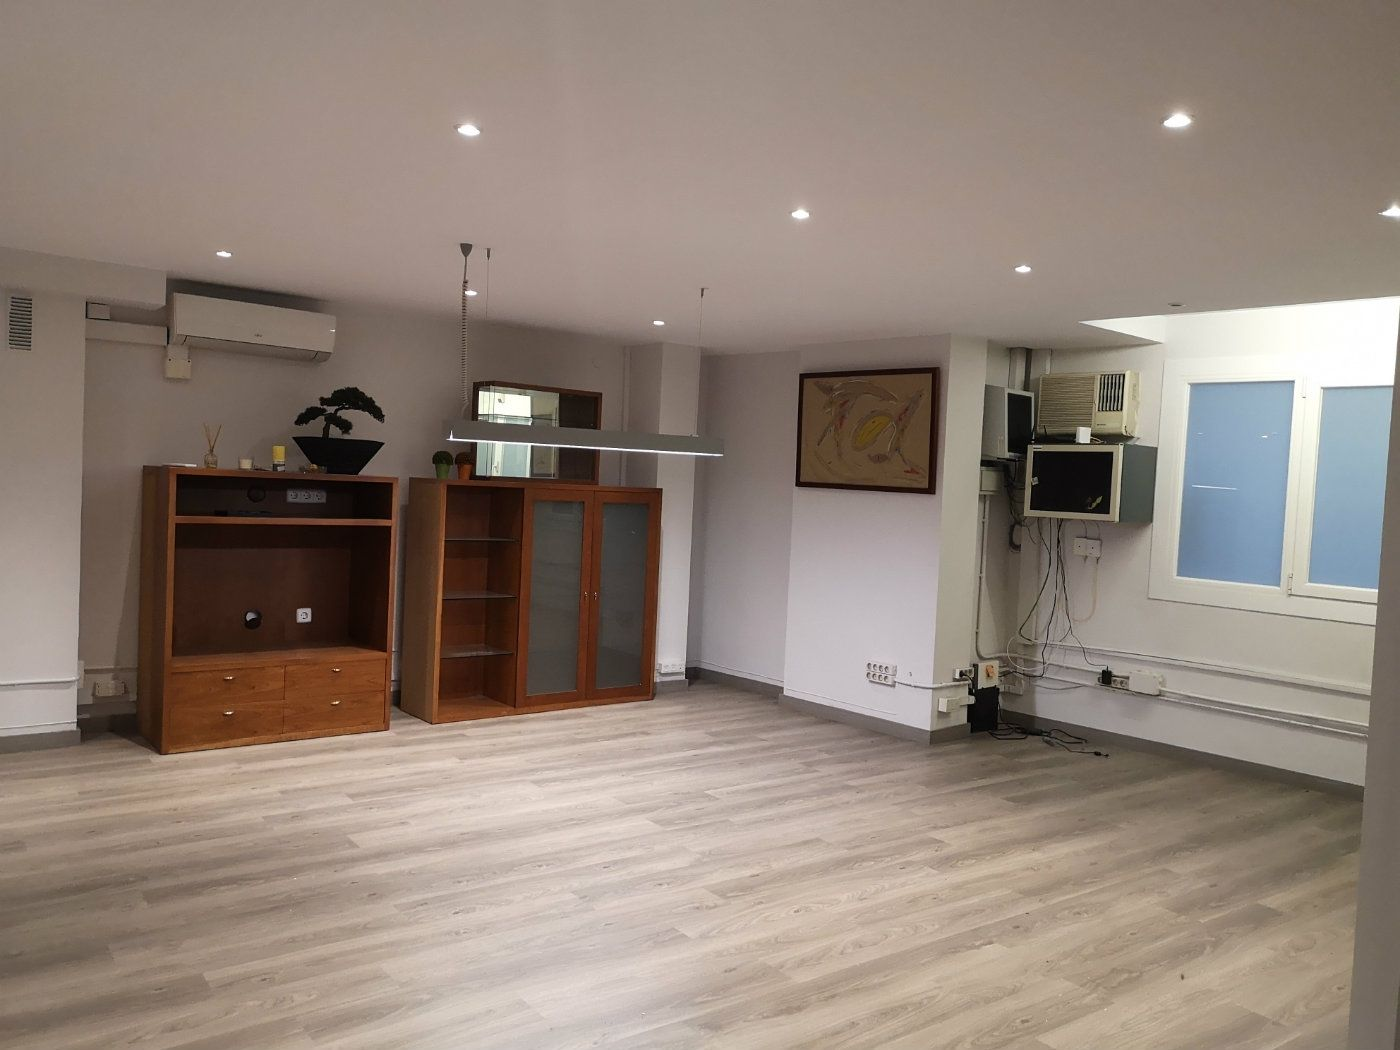 Rent Office space  Carrer galileu. Oficina en alquiler les corts